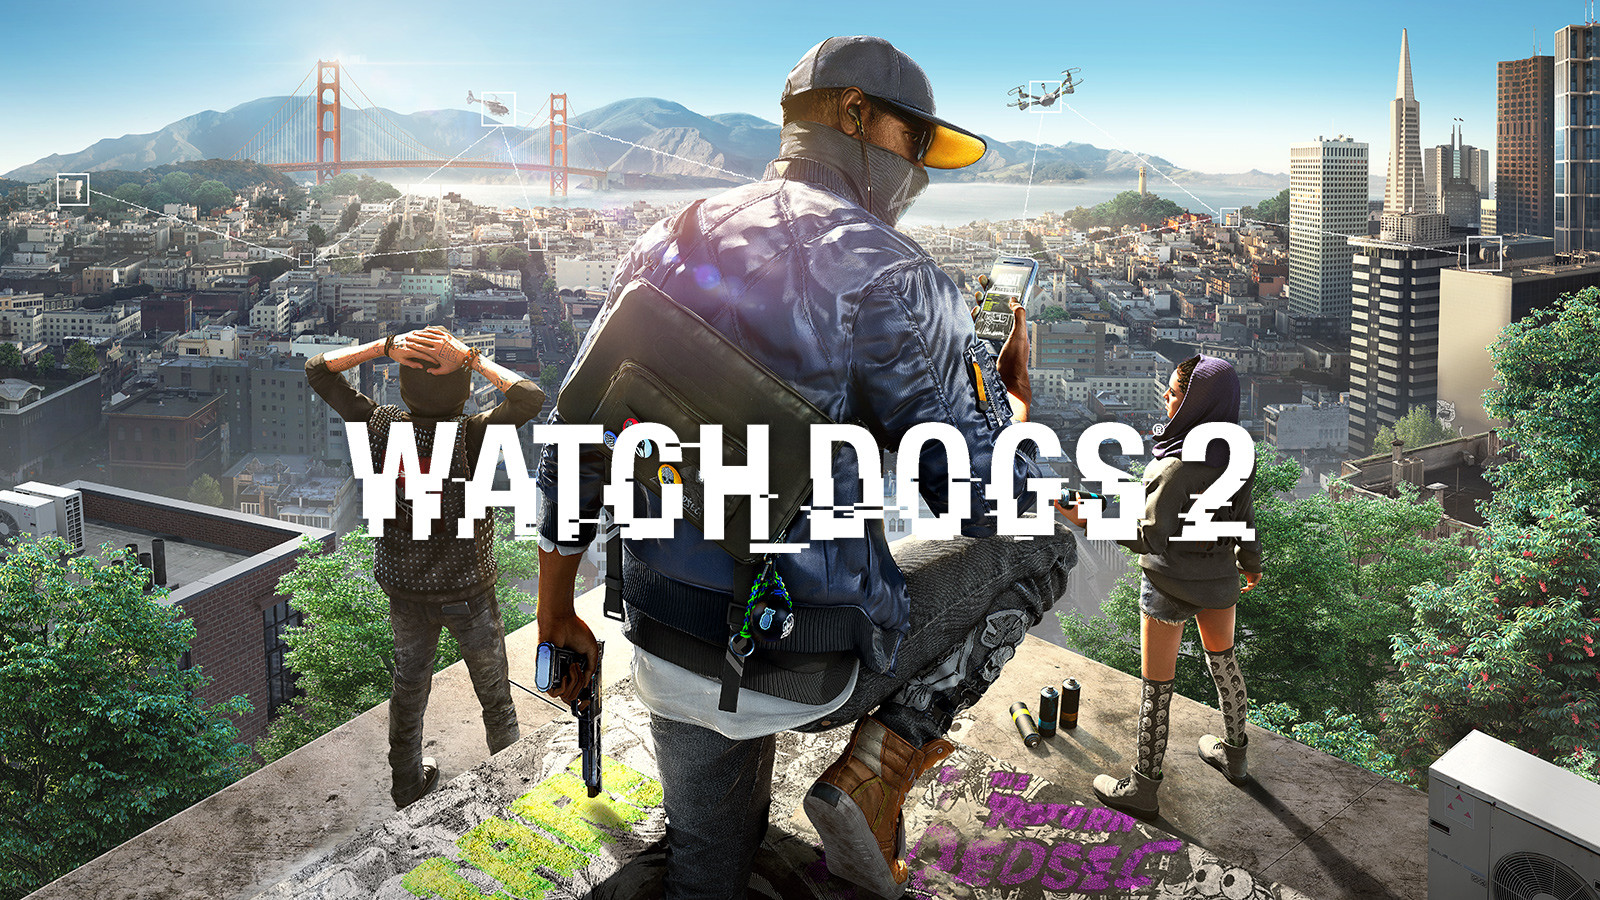 Watch Dogs 2 Uses EasyAntiCheat - Monitors Systems